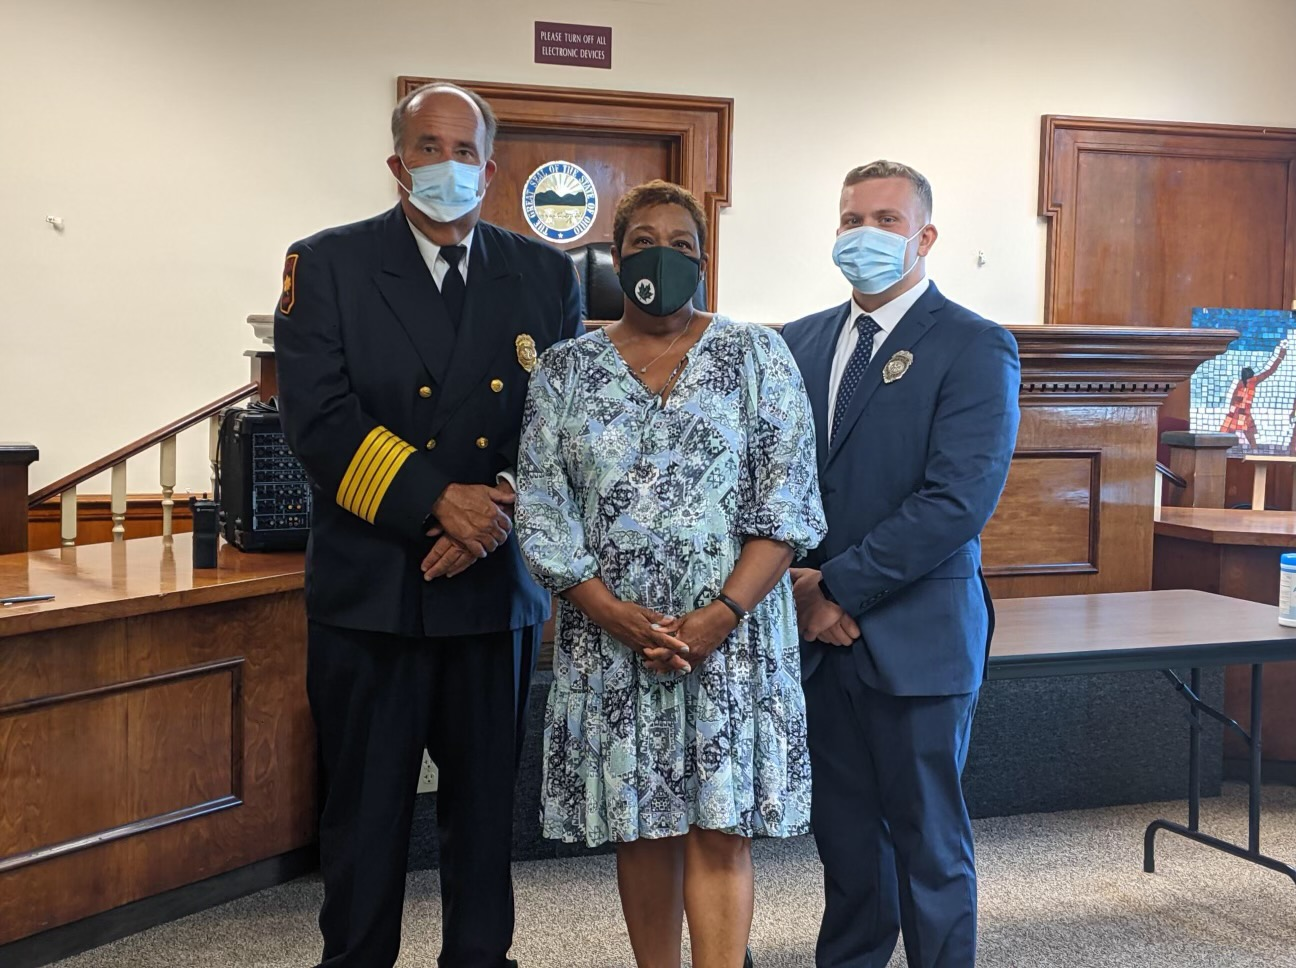 New Fire Cadet sworn in alongside Mayor and Fire Chief.